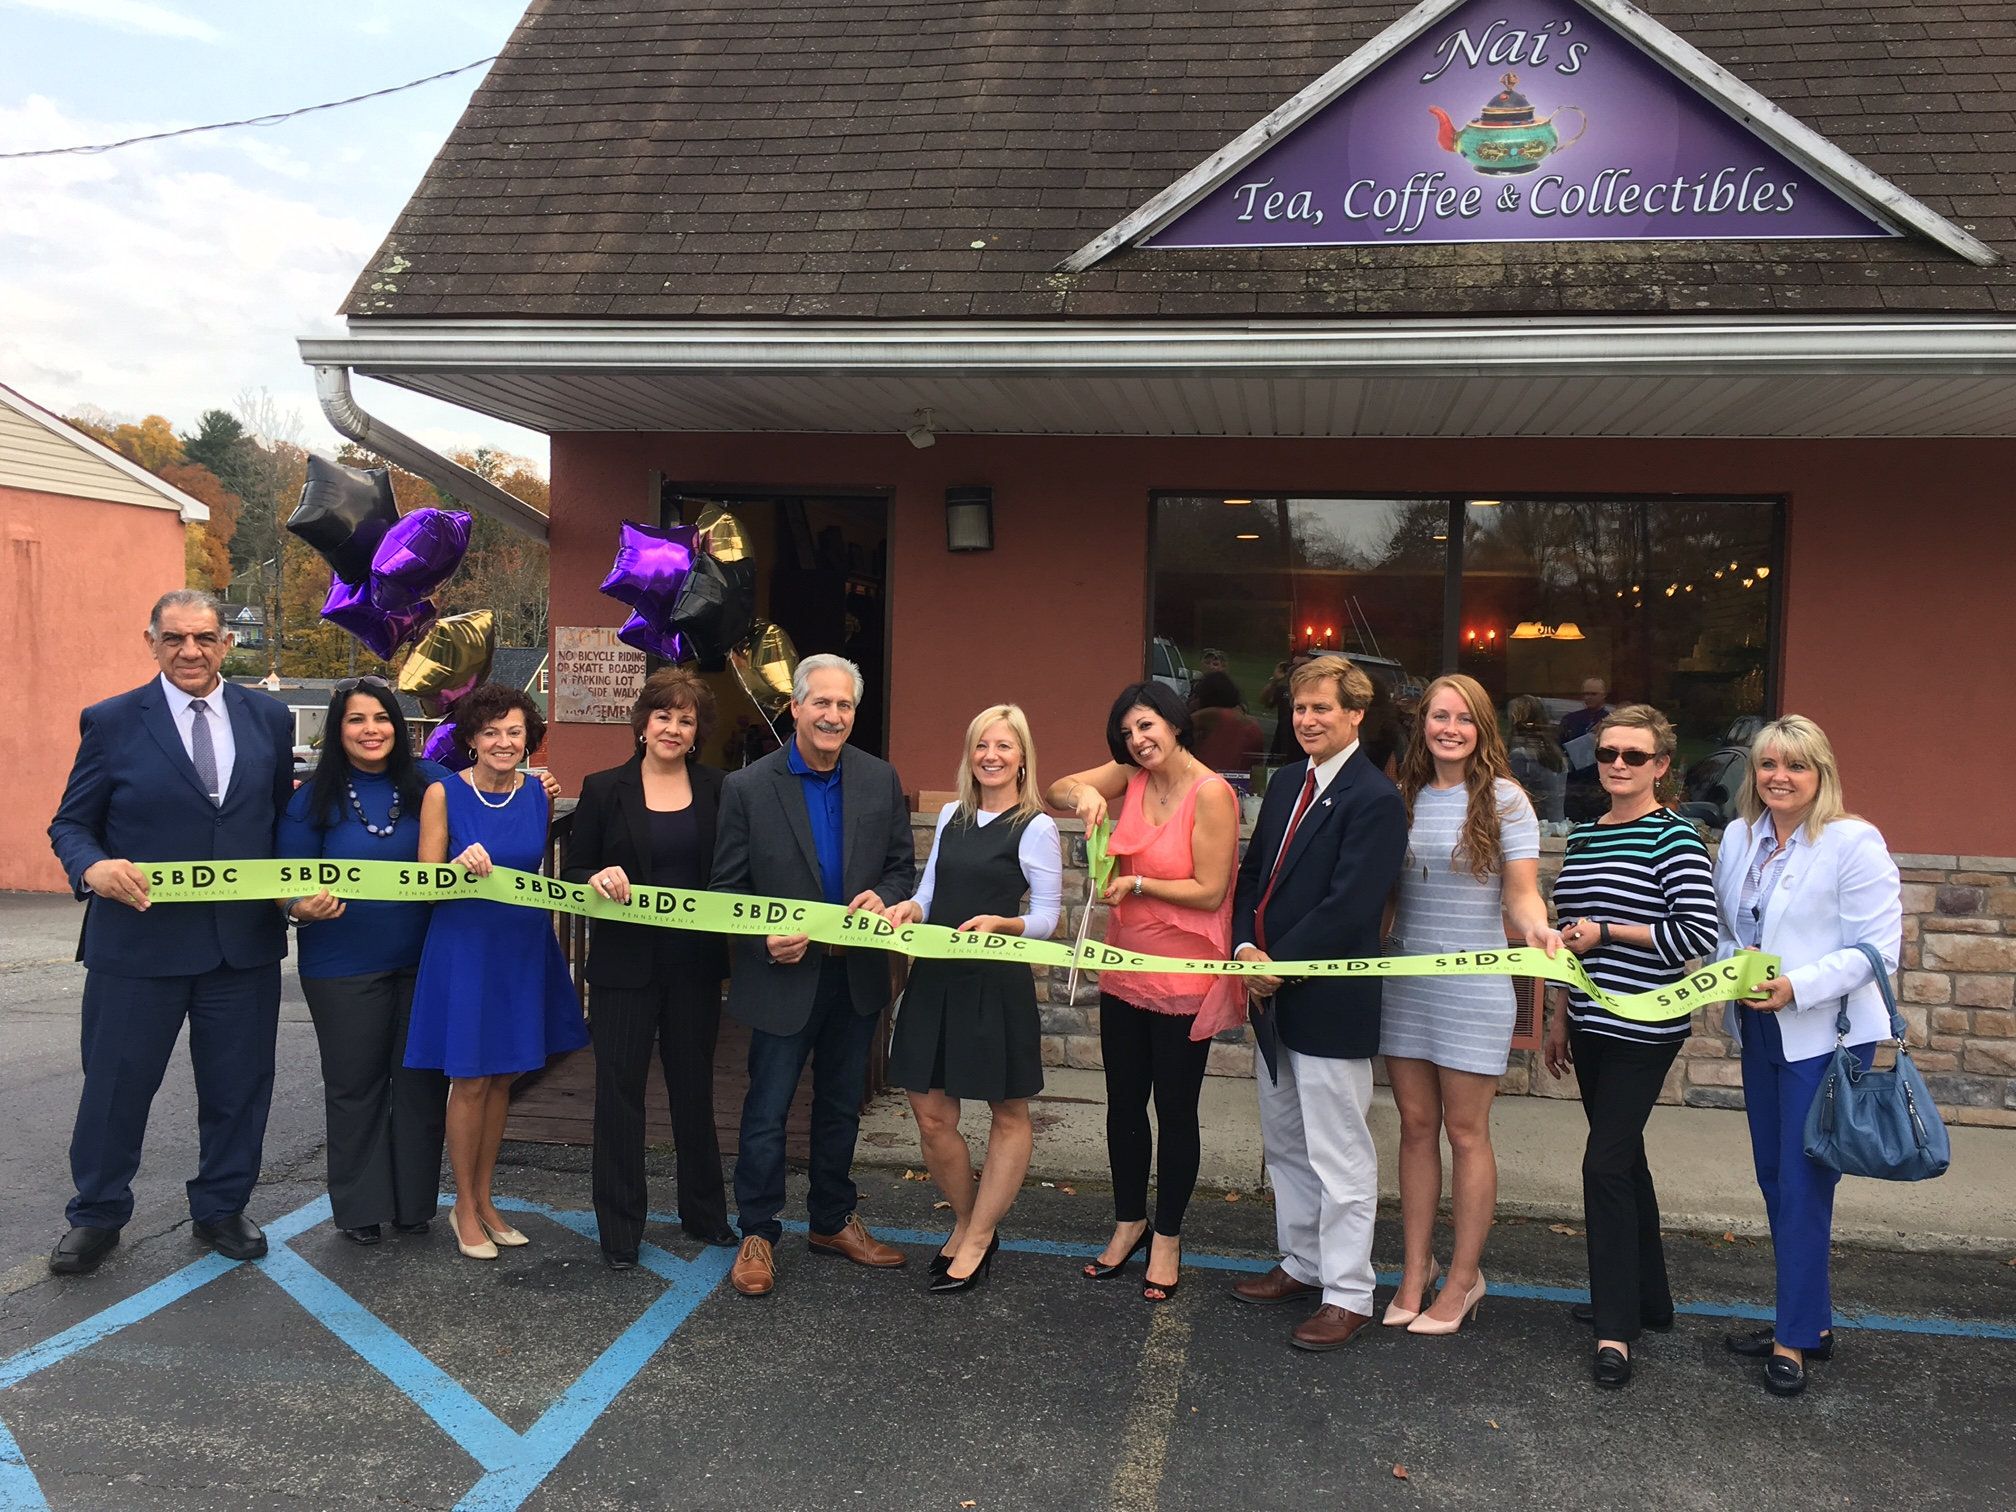 New Business Alert – Nai's Tea, Coffee & Collectibles Opens in the Poconos